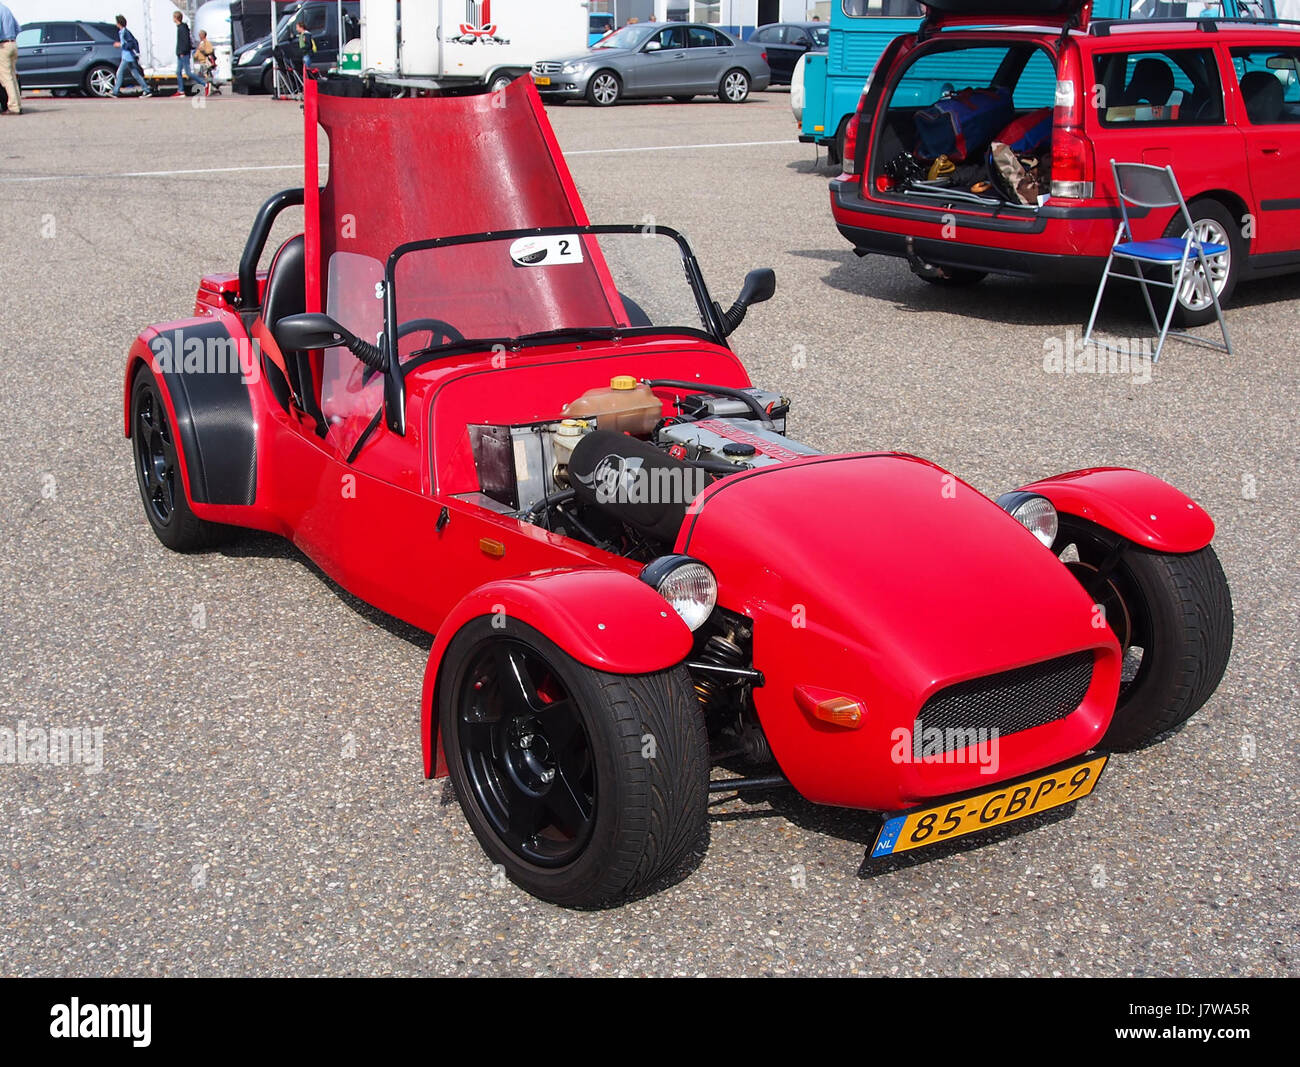 1992 Westfield Sports Licence 85 GBP 9 Pic1